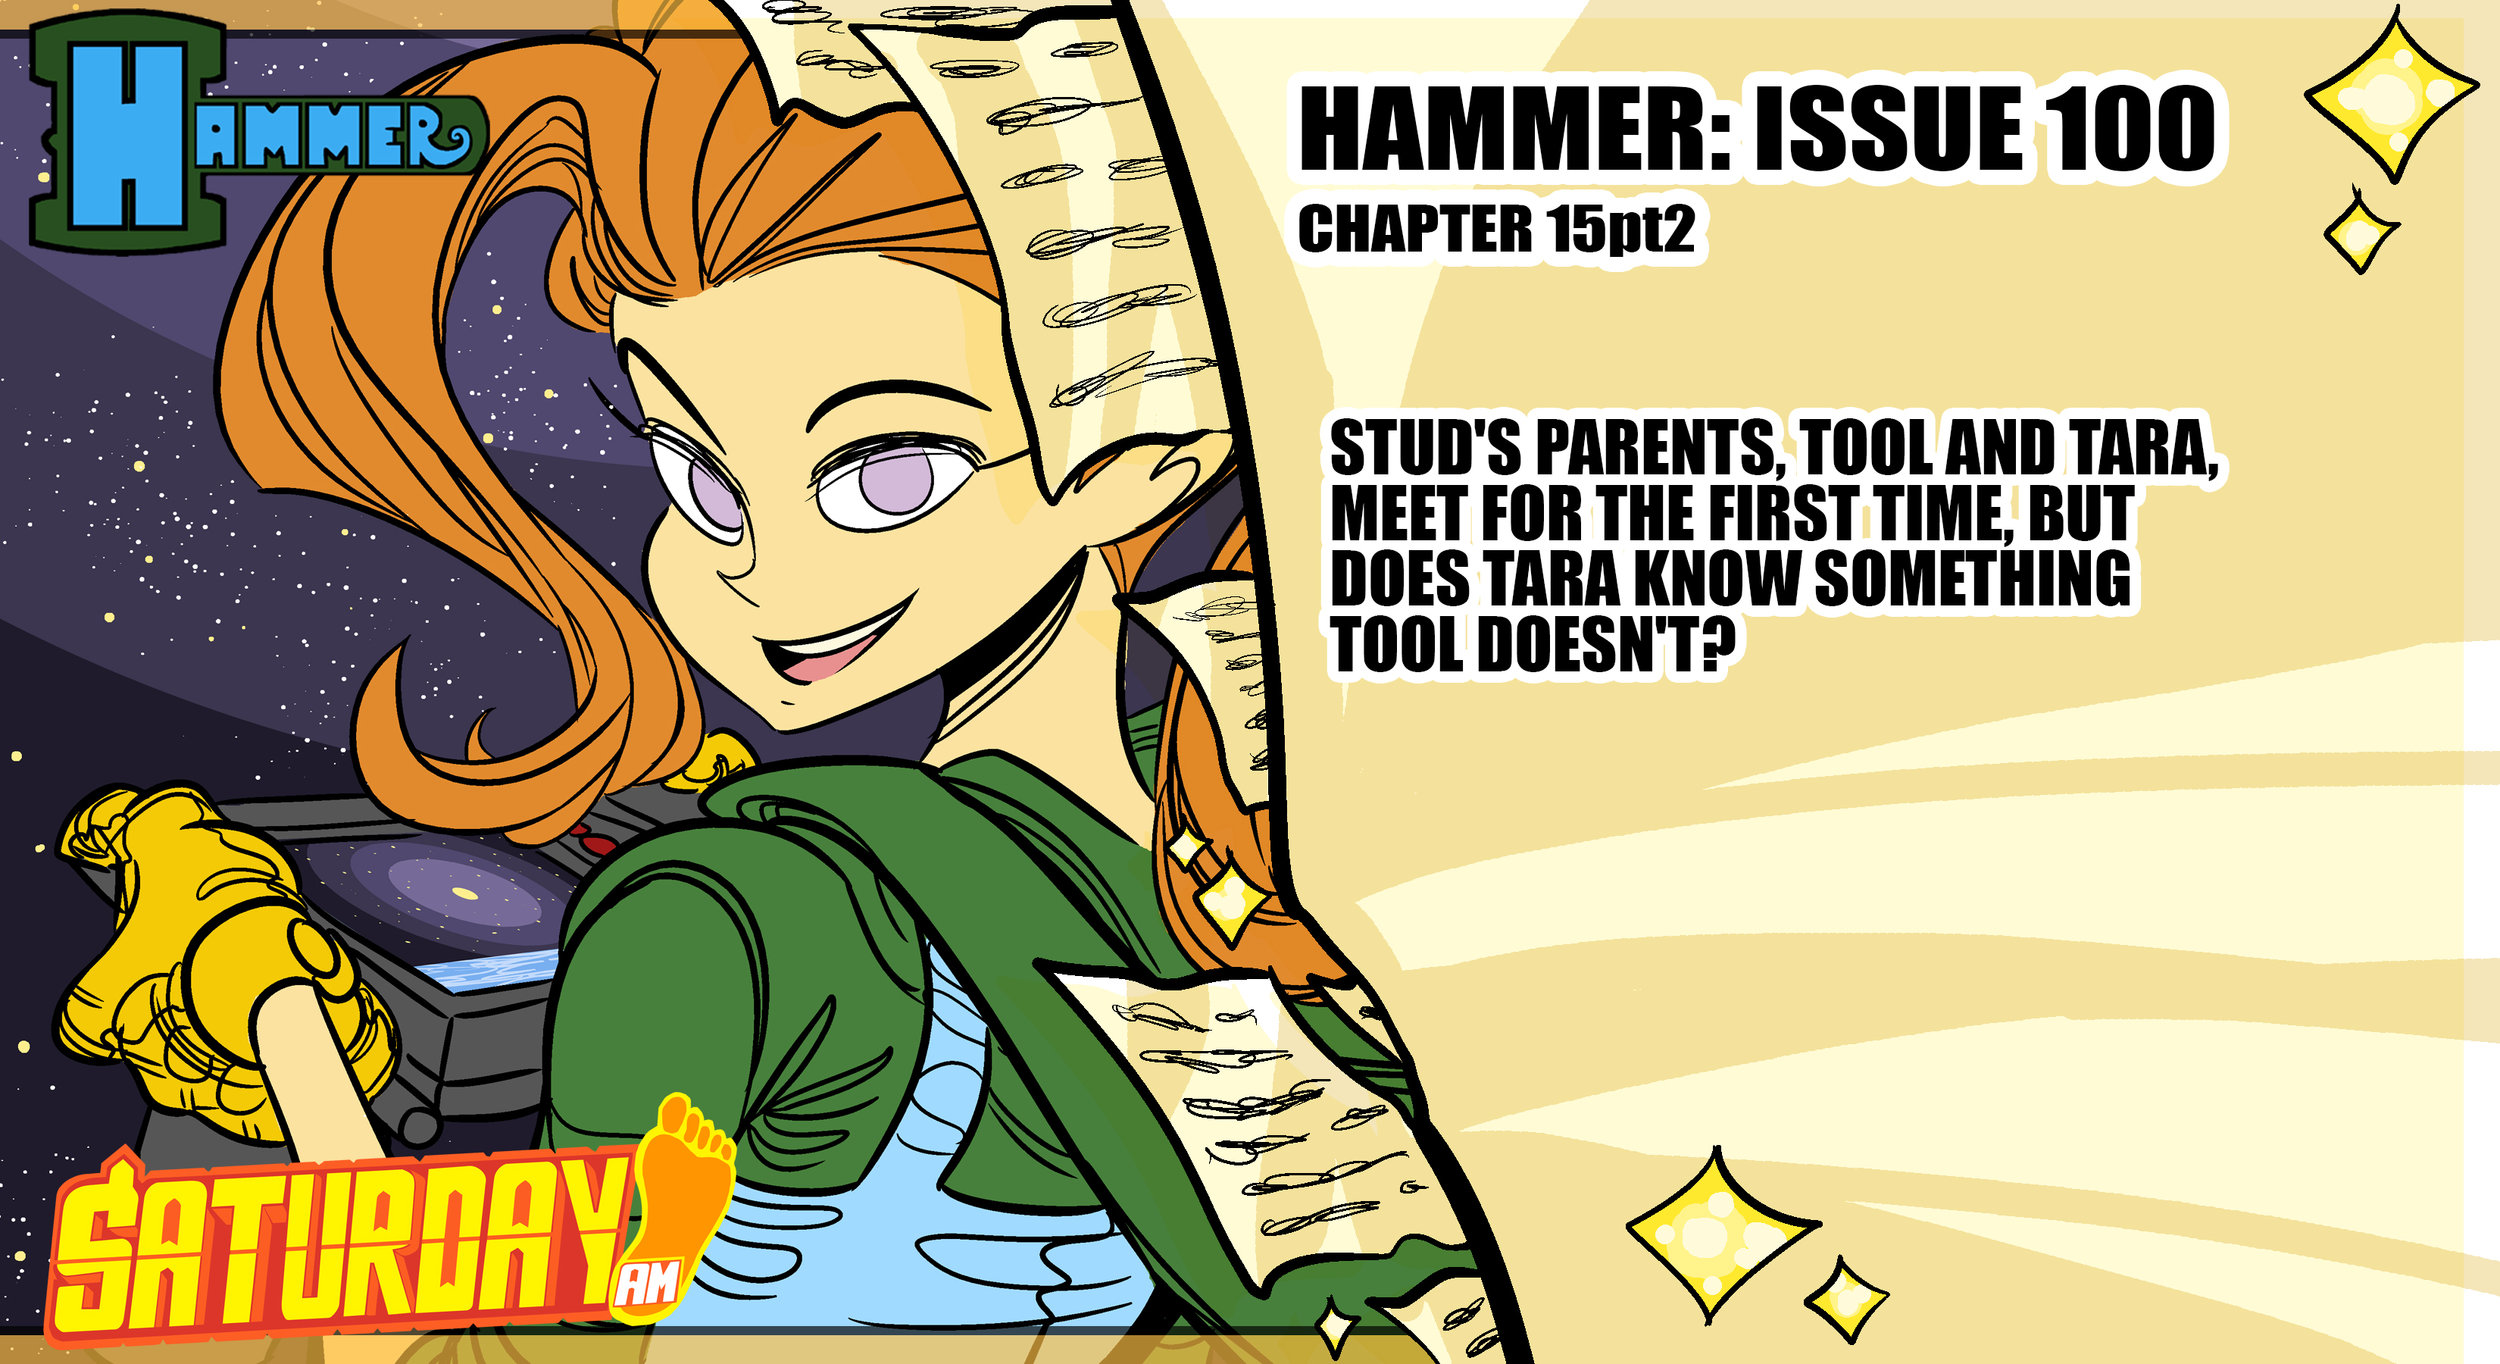 HAMMER WEBSITE_LATEST ISSUE GRAPHIC #100.jpg